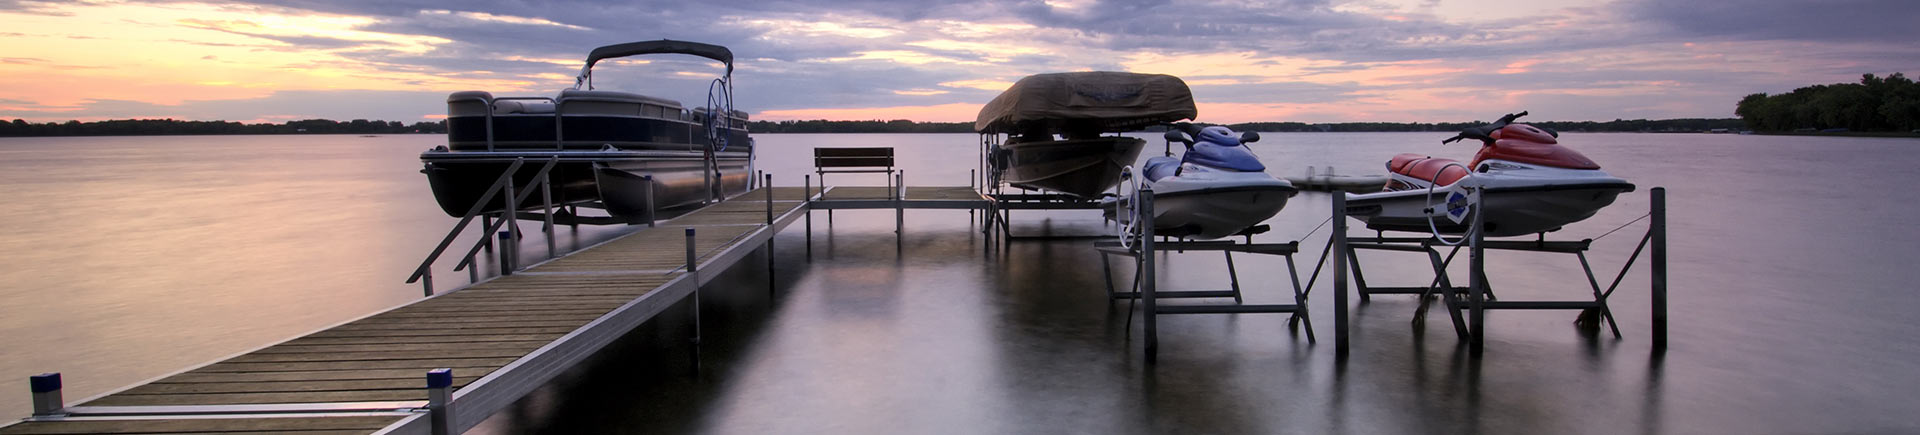 BoatLift Mat — Keep Your Lift From Sinking | Lakemat